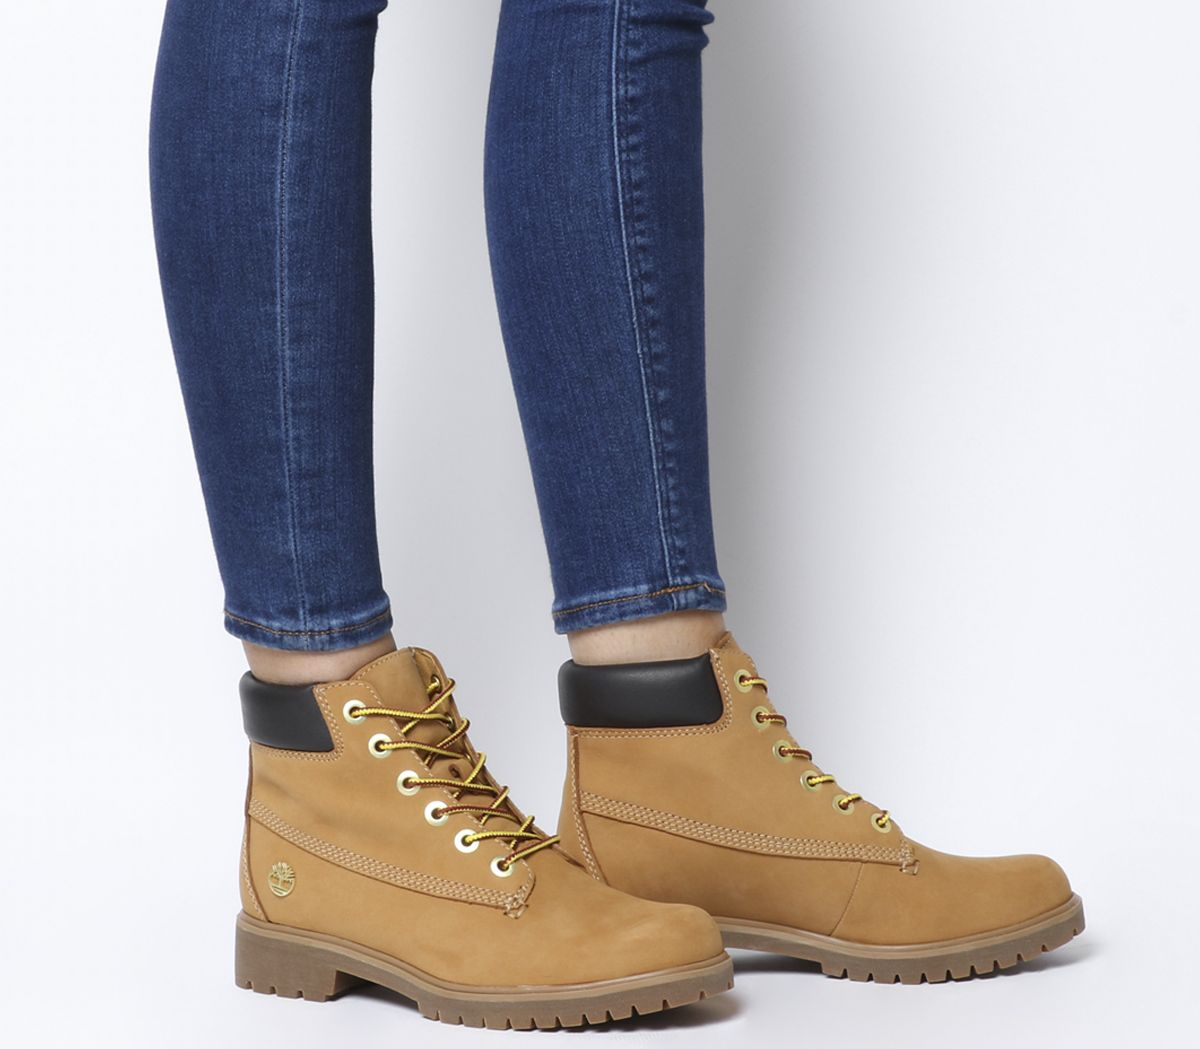 38418388d02b8 Timberland Slim Premium 6 Inch Boots Wheat - Ankle Boots